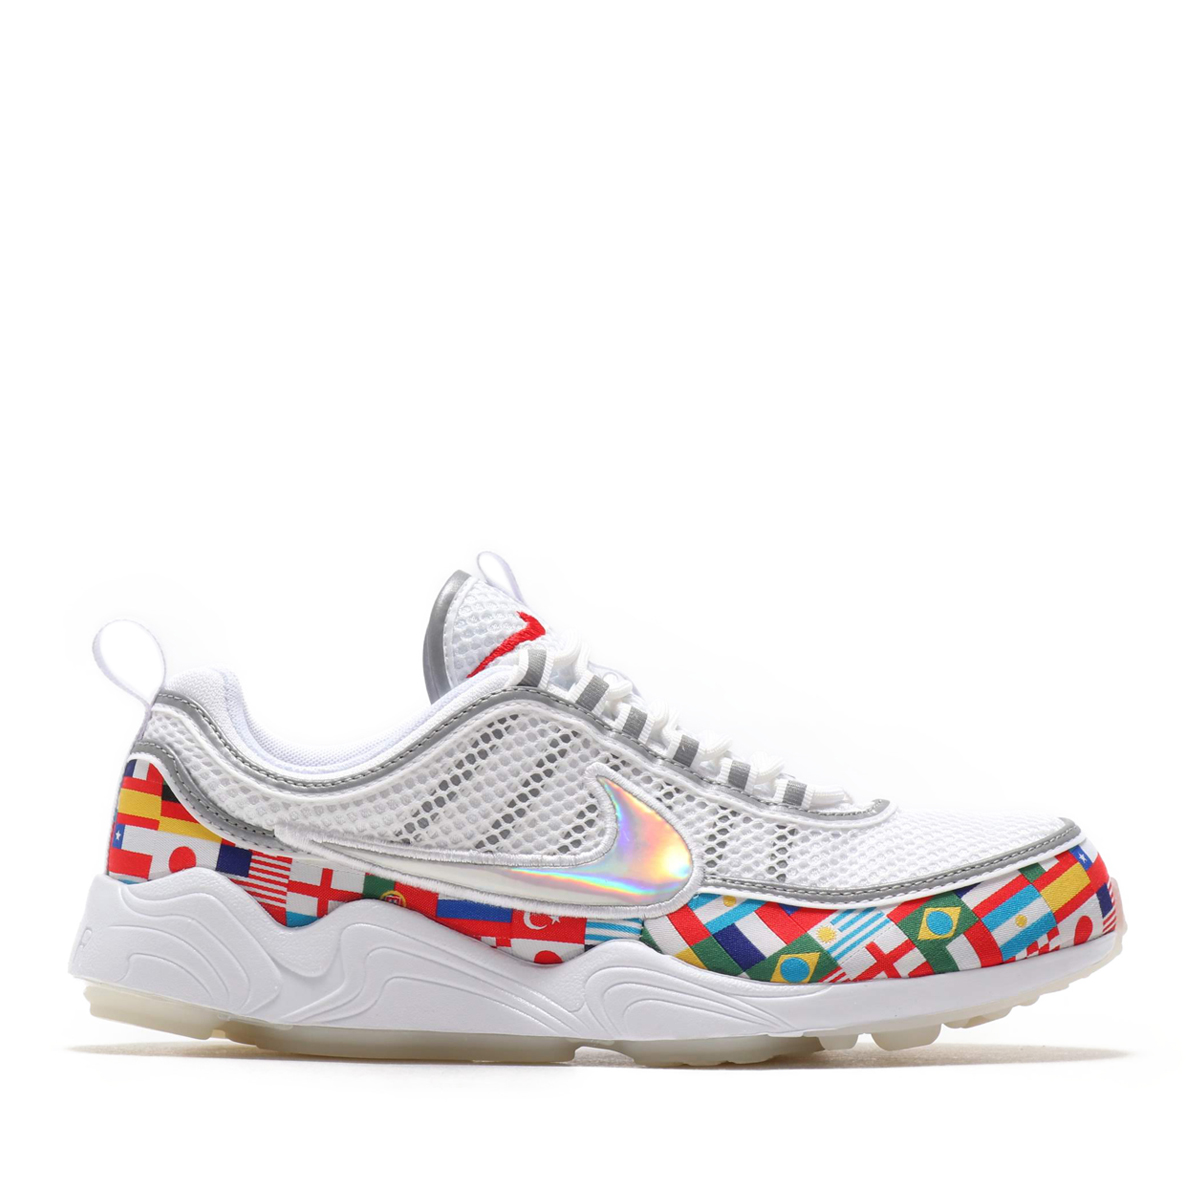 5b5c799ea6ec1 NIKE AIR ZOOM SPIRIDON  16 NIC QS (WHITE MULTI-COLOR) (Nike air zoom  pyridone 16 WC)